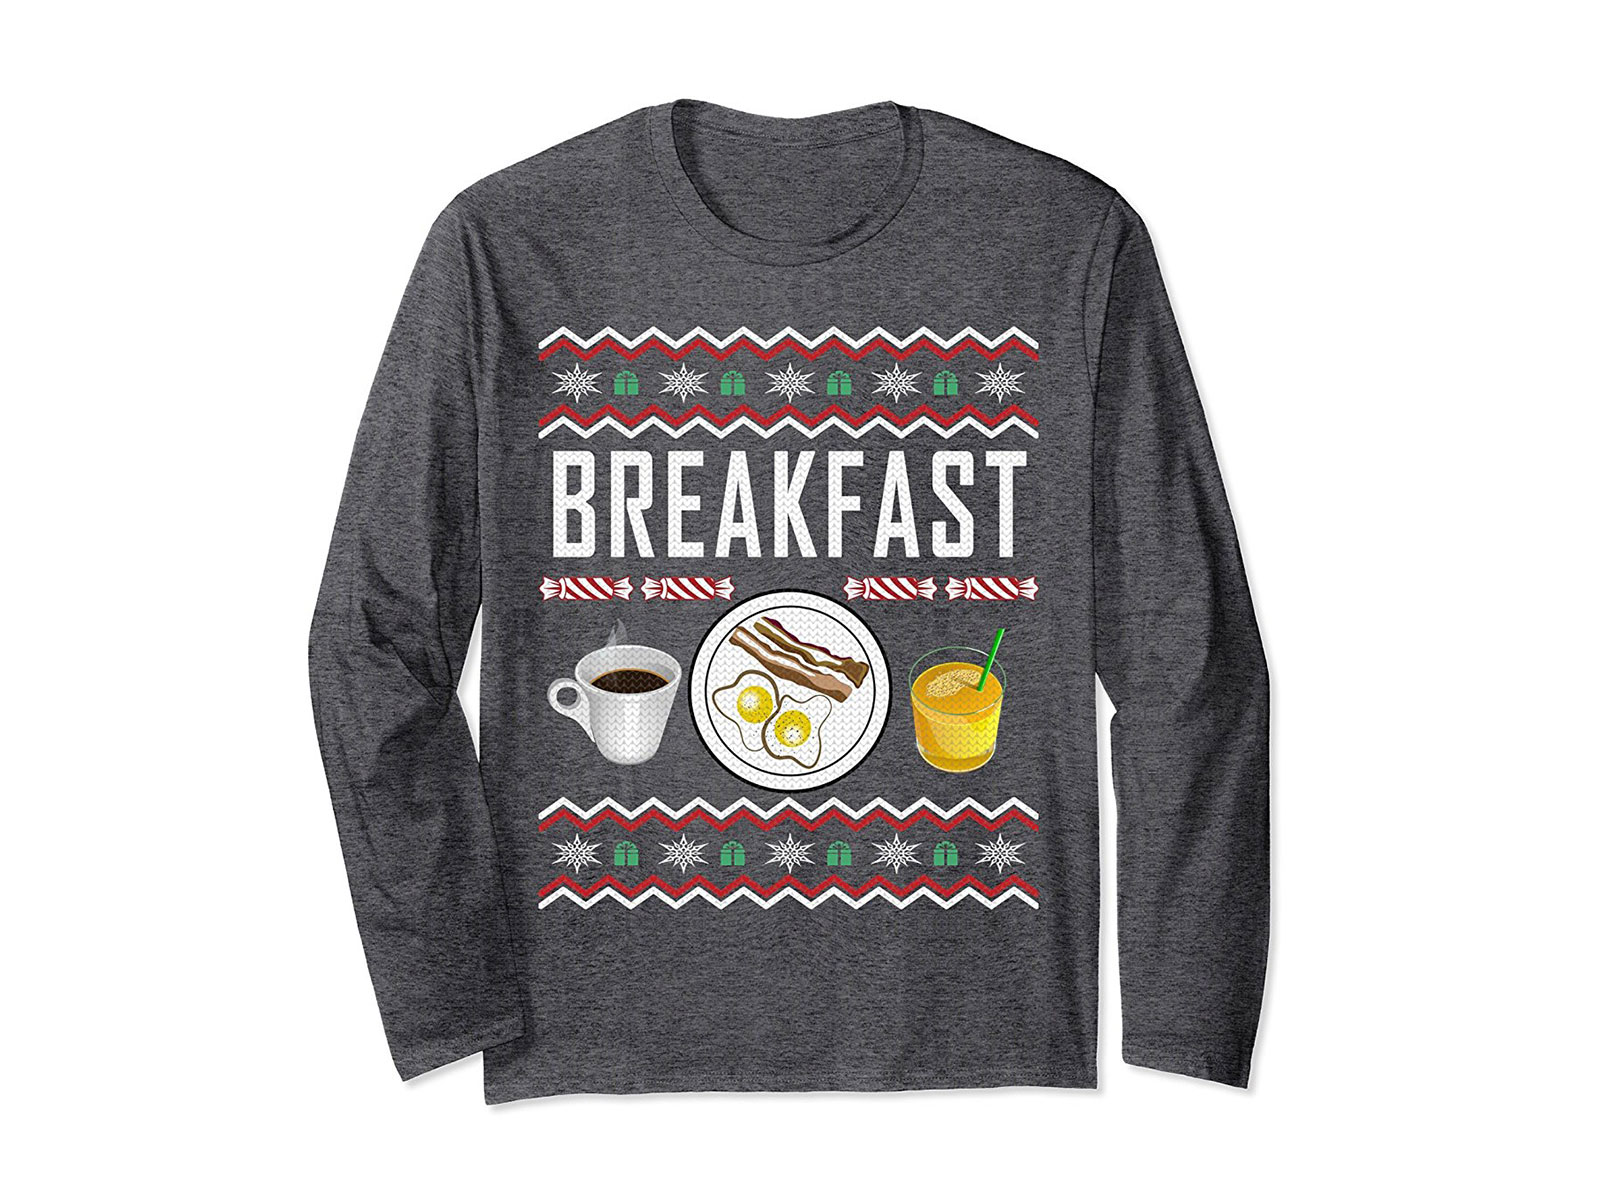 878b49b98efc 11 Food-Themed Ugly Christmas Sweaters Serving Up Holiday Cheer ...